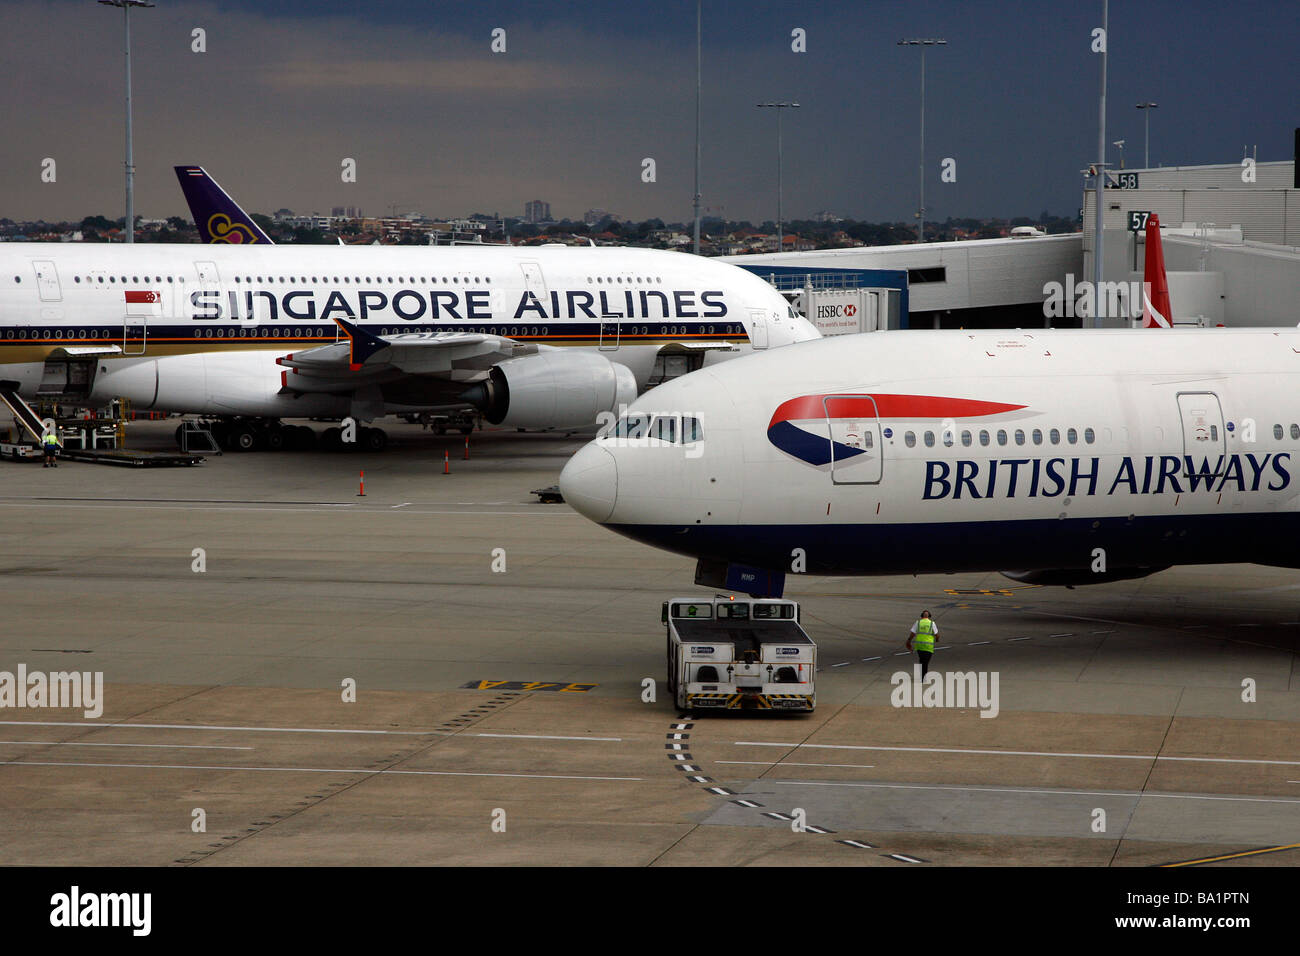 A British Airways Boeing 777-200 aircraft passes an Airbus A380 plane at Sydney Kingsford Smith International Airport - Stock Image